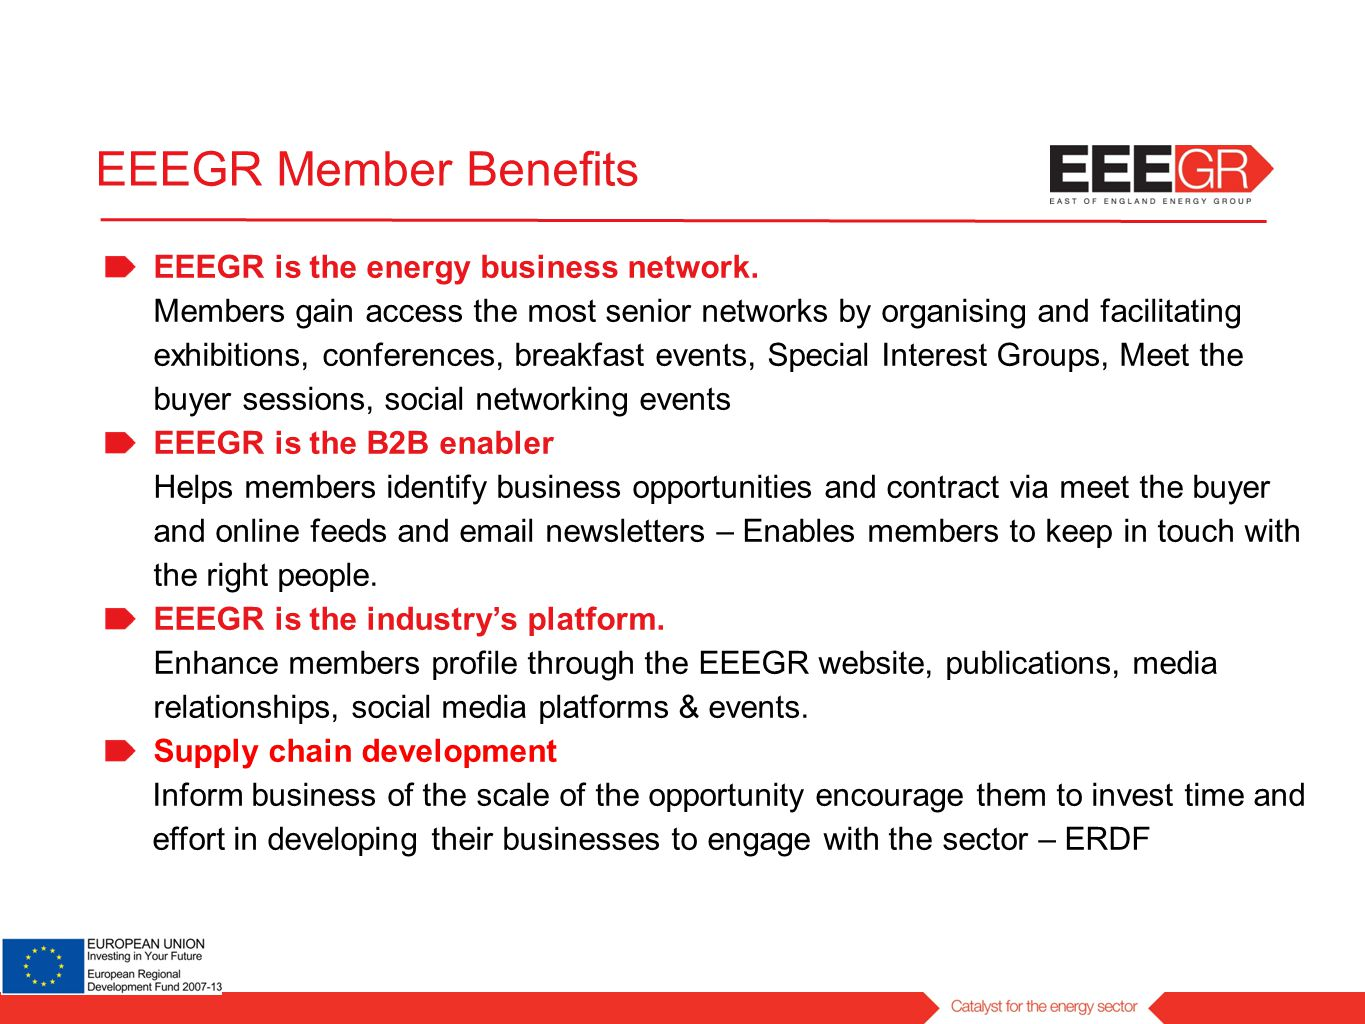 EEEGR is the energy business network. Members gain access the most senior networks by organising and facilitating exhibitions, conferences, breakfast